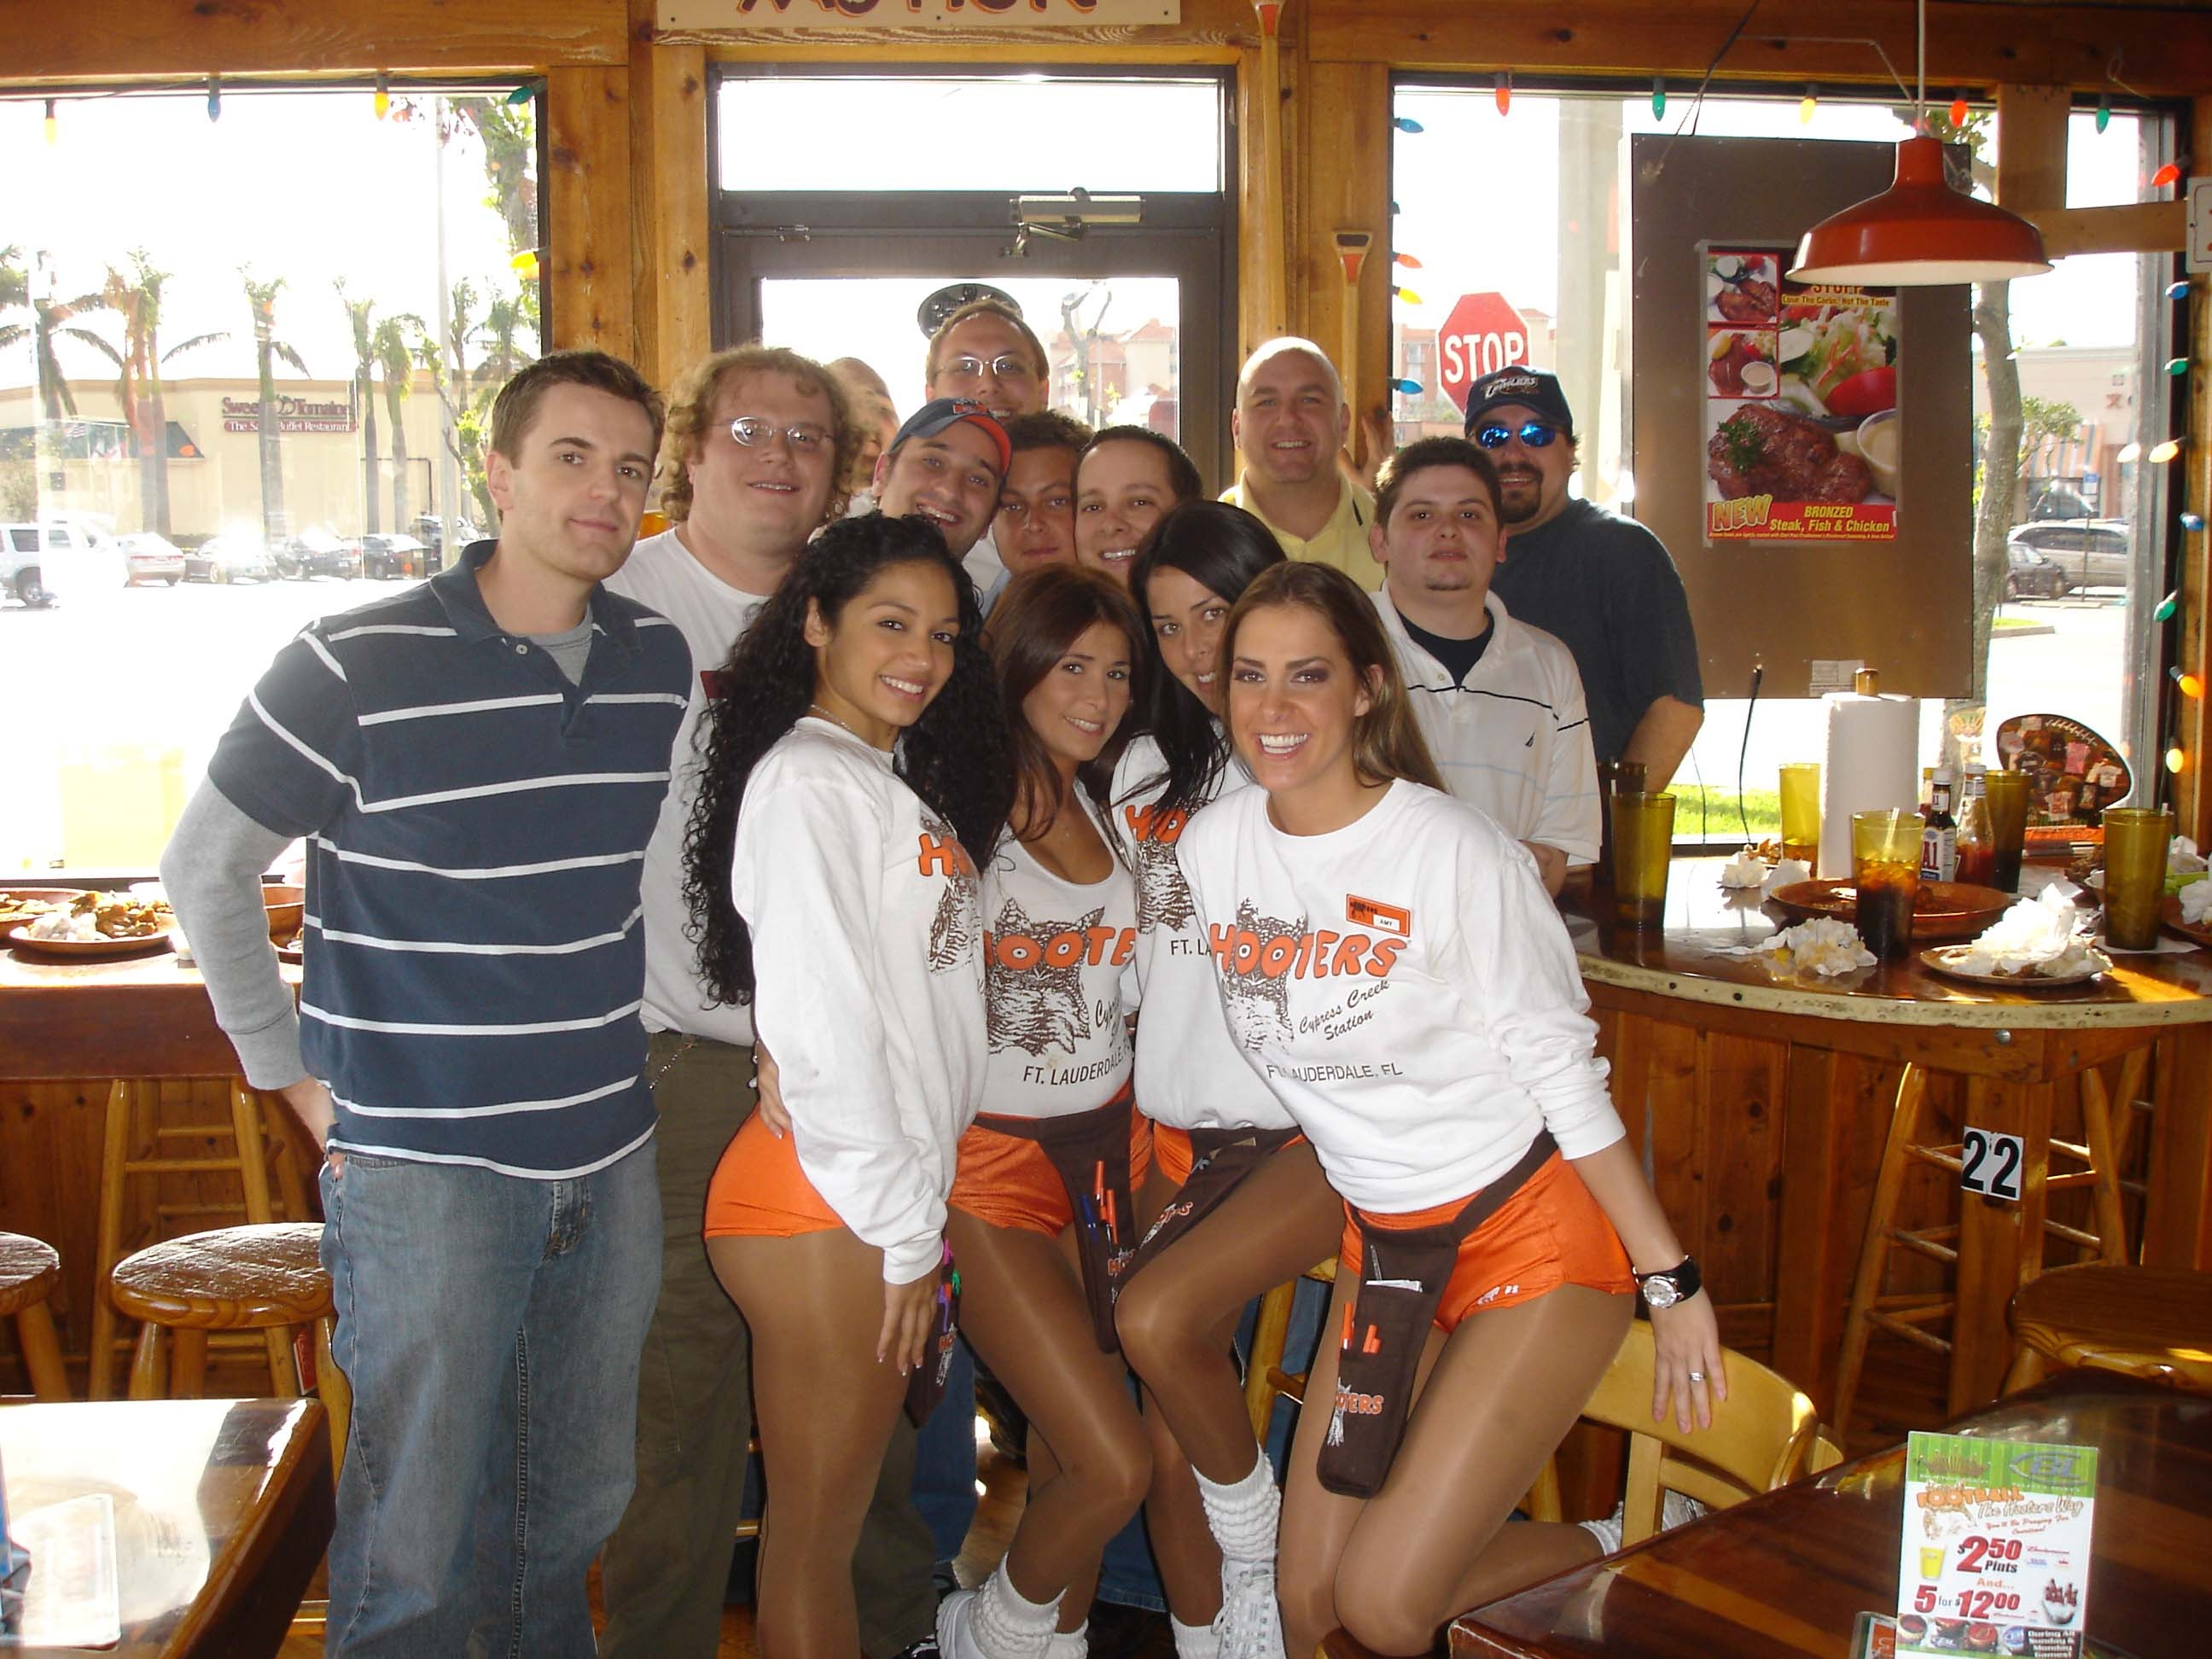 CBS Fantasy Staff's Hooters Wings Lunch (circa 2005)